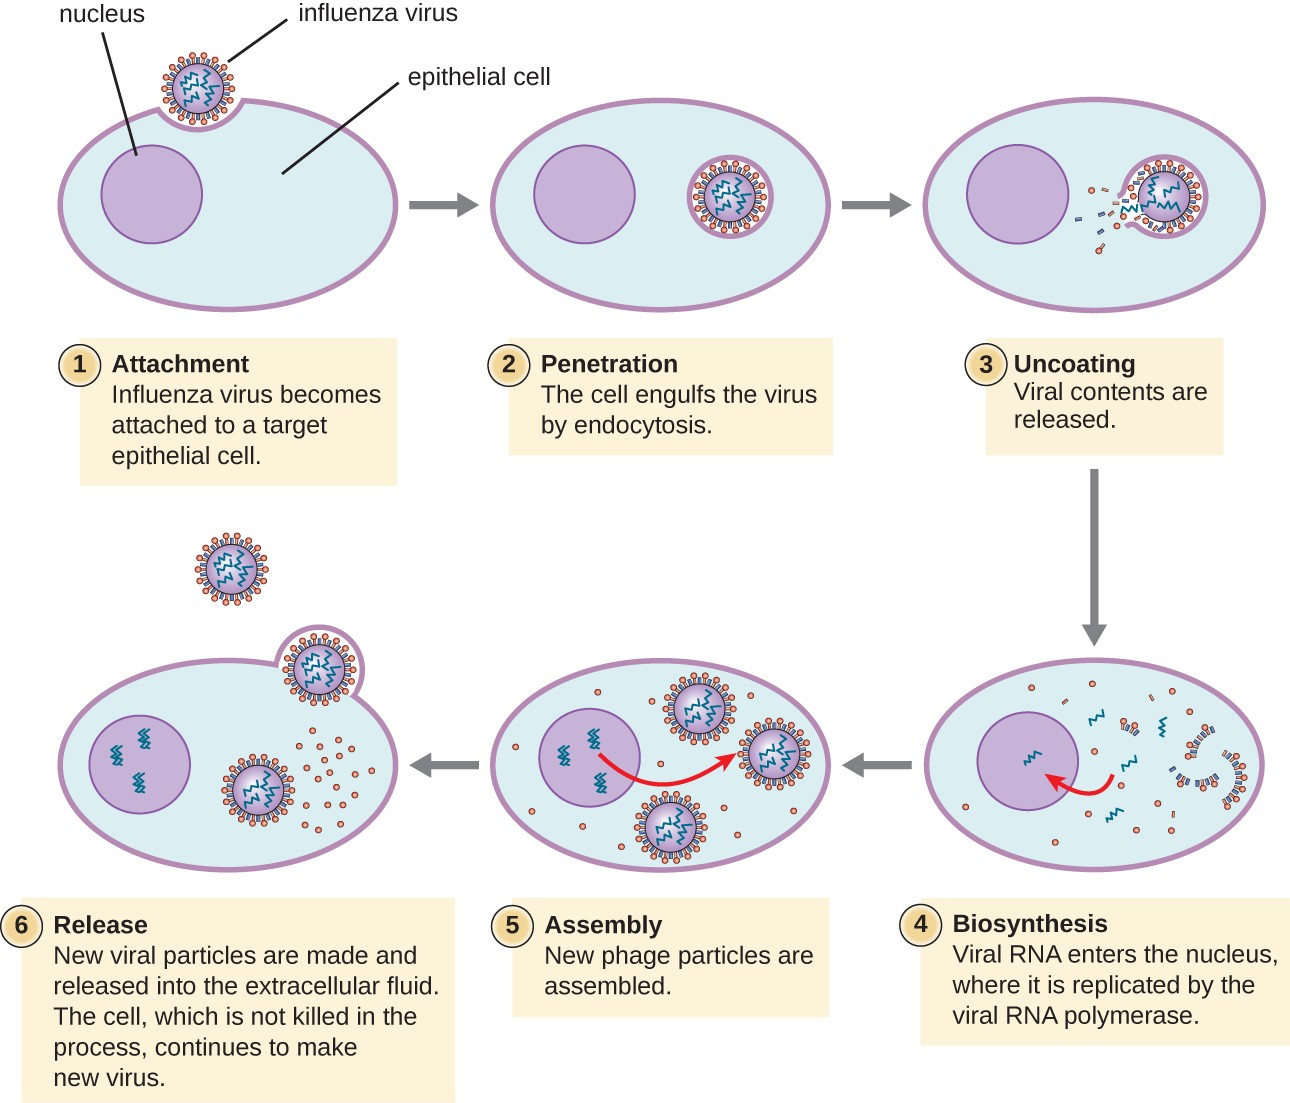 In influenza virus infection, viral glycoproteins attach the virus to a host epithelial cell. As a result, the virus is engulfed. Viral RNA and viral proteins are made and assembled into new virions that are released by budding.